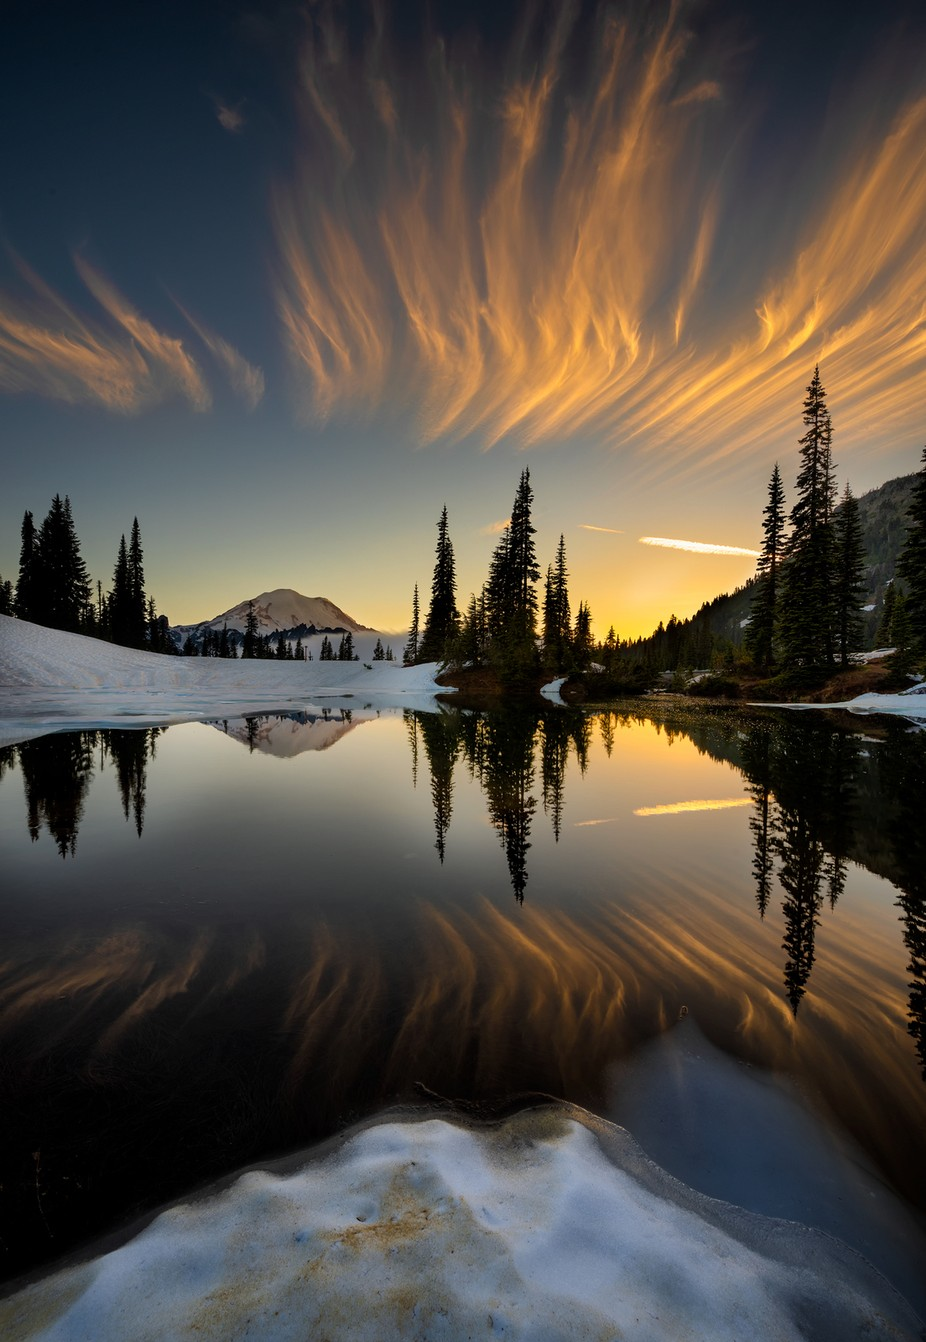 Sunset at Tipsoo Lake by vbpetercheung922585511 - The Wonders of the World Photo Contest